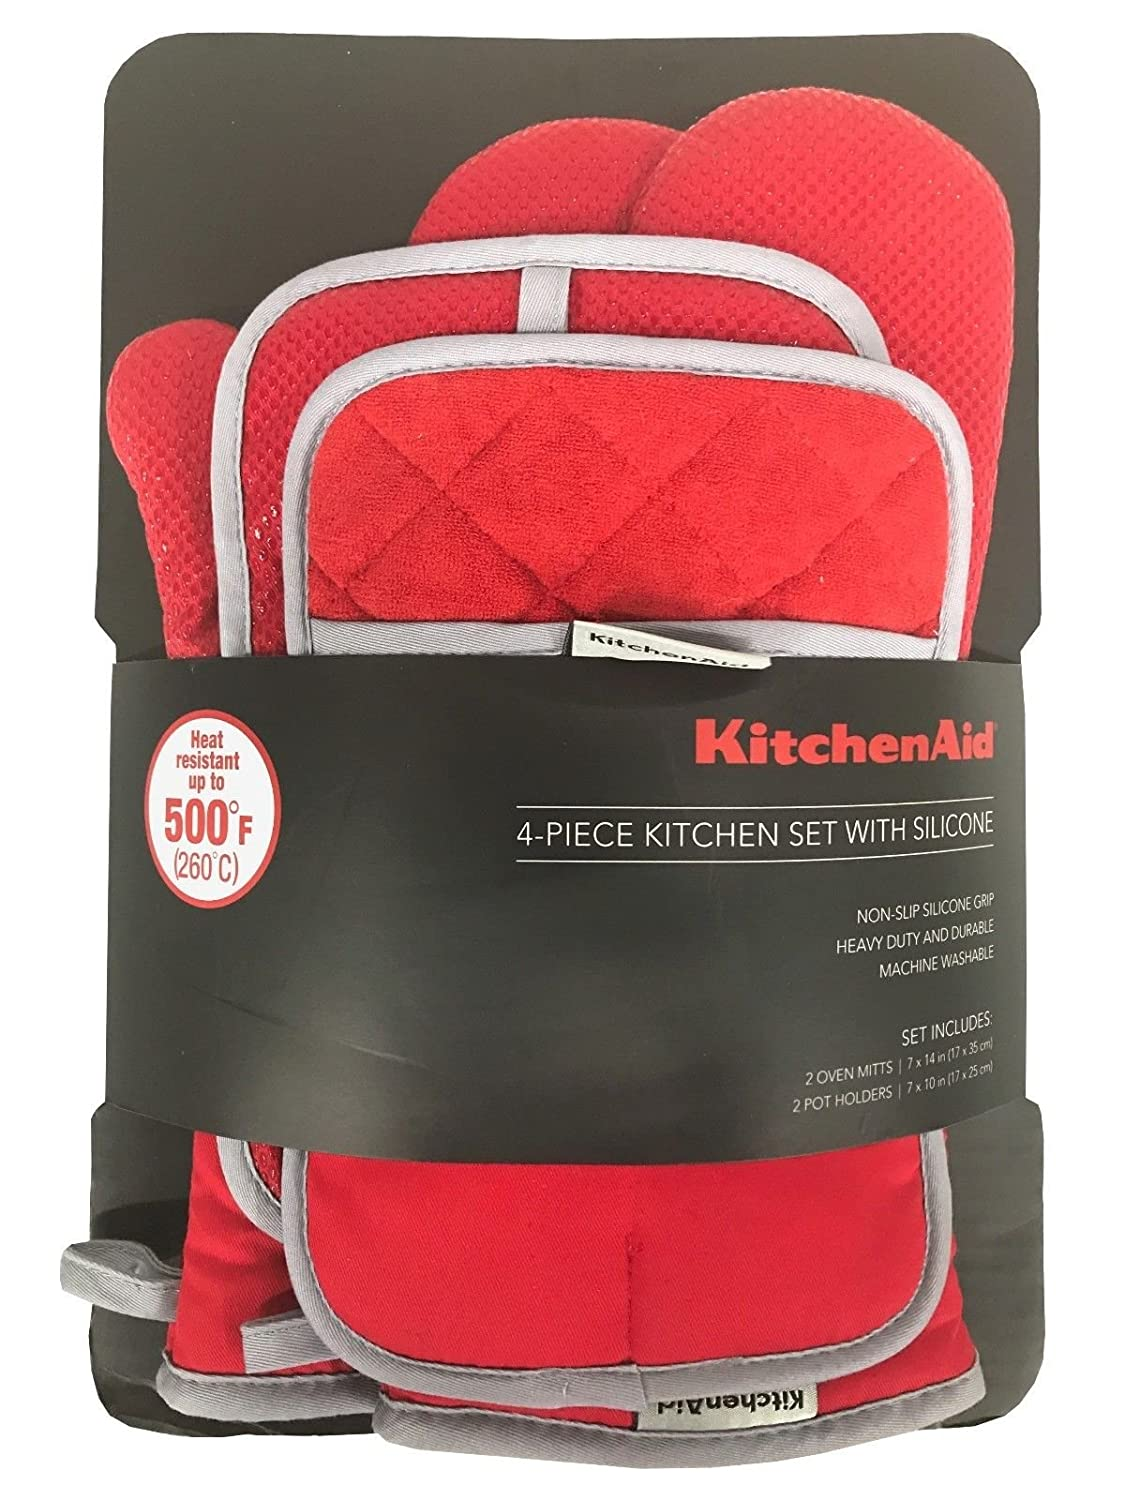 KitchenAid 4 Piece Kitchen Set w/ Silicone 2 Oven Mitts, 2 Pot Holders (Red)